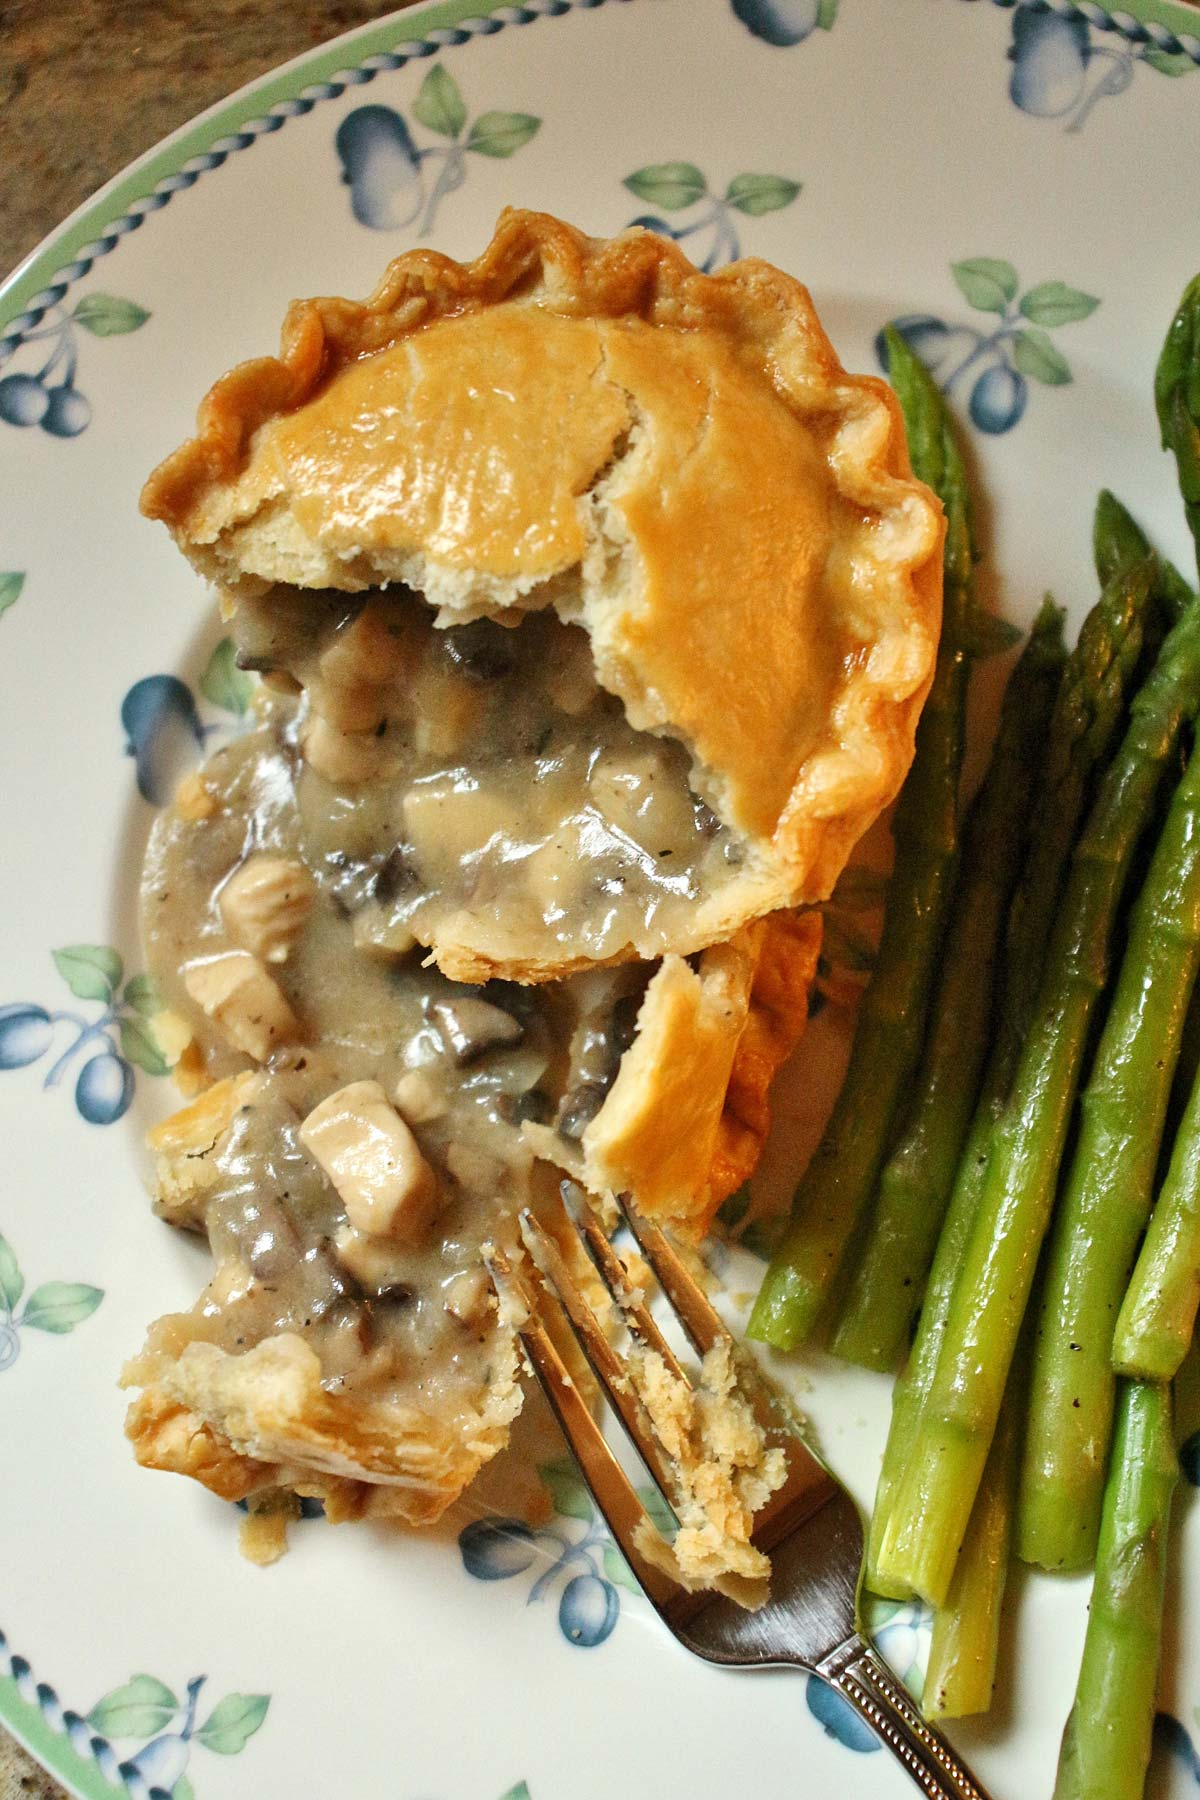 An individual chicken and mushroom pie broken open with the filling spilling out.